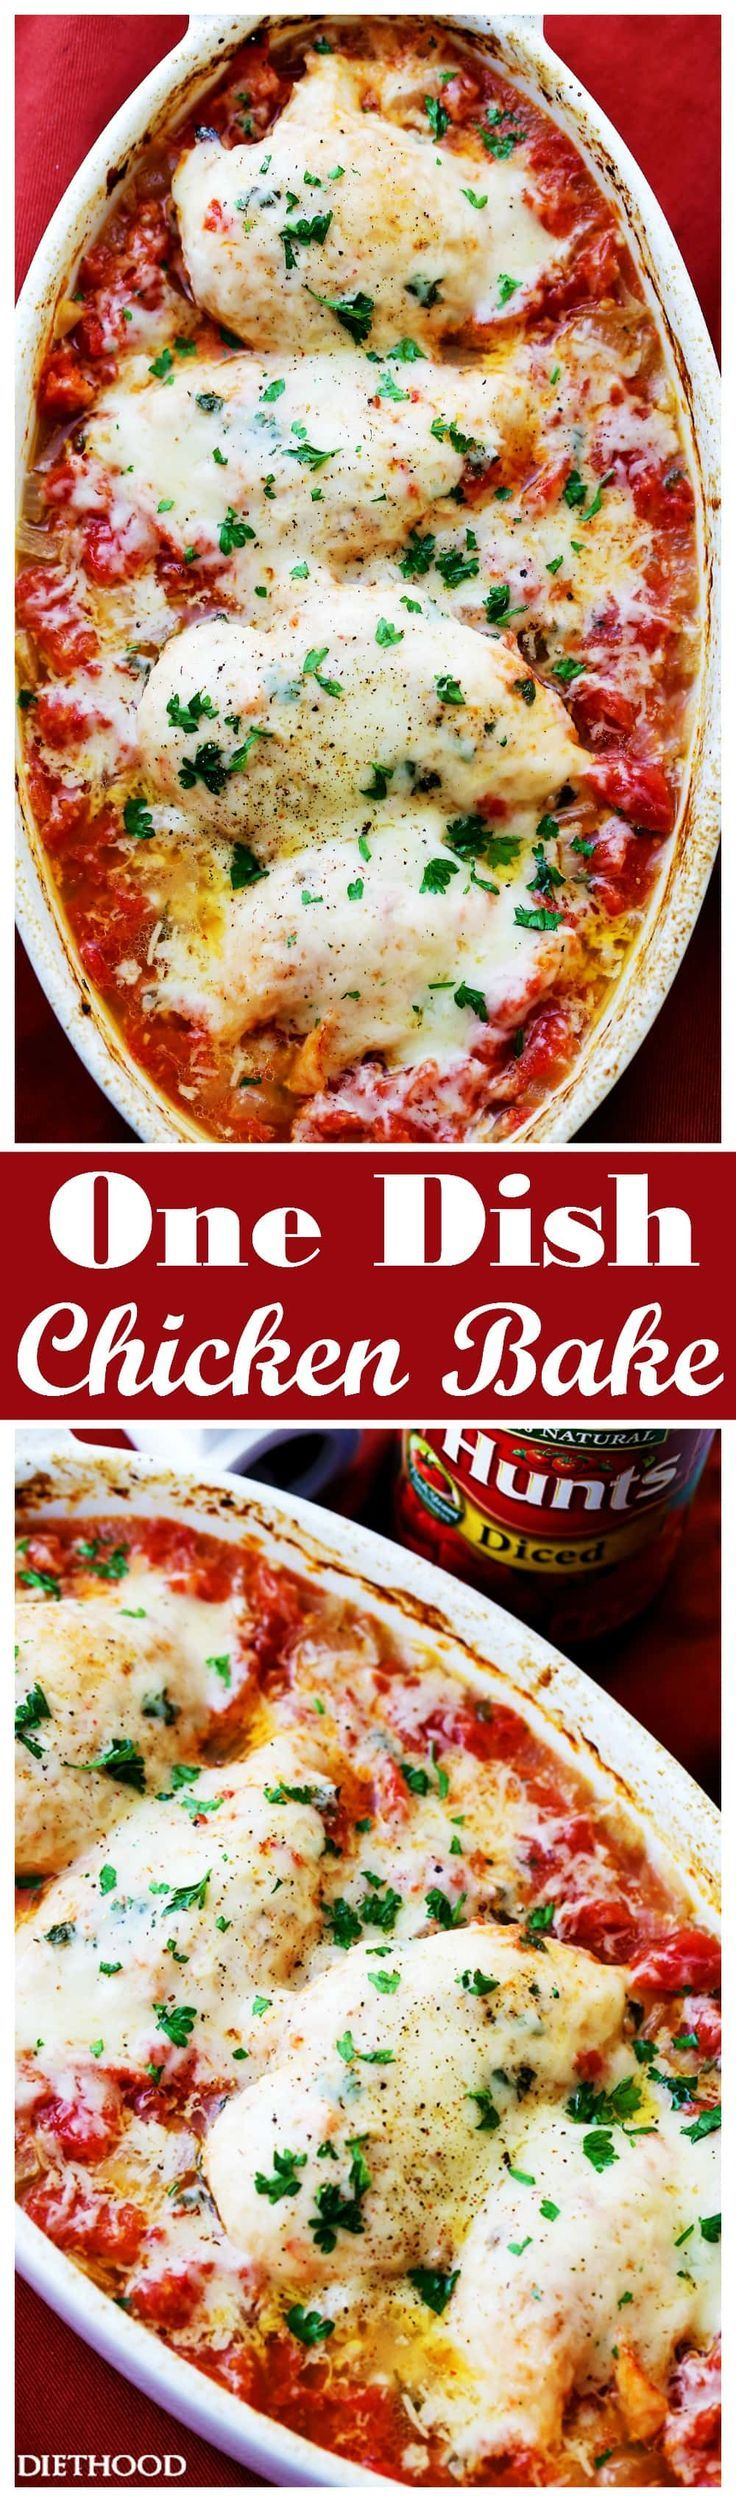 One Dish Chicken Bake – Flavorful chicken baked on a bed of tomatoes and covered in cheese makes for a one-dish dinner the whole family will enjoy.